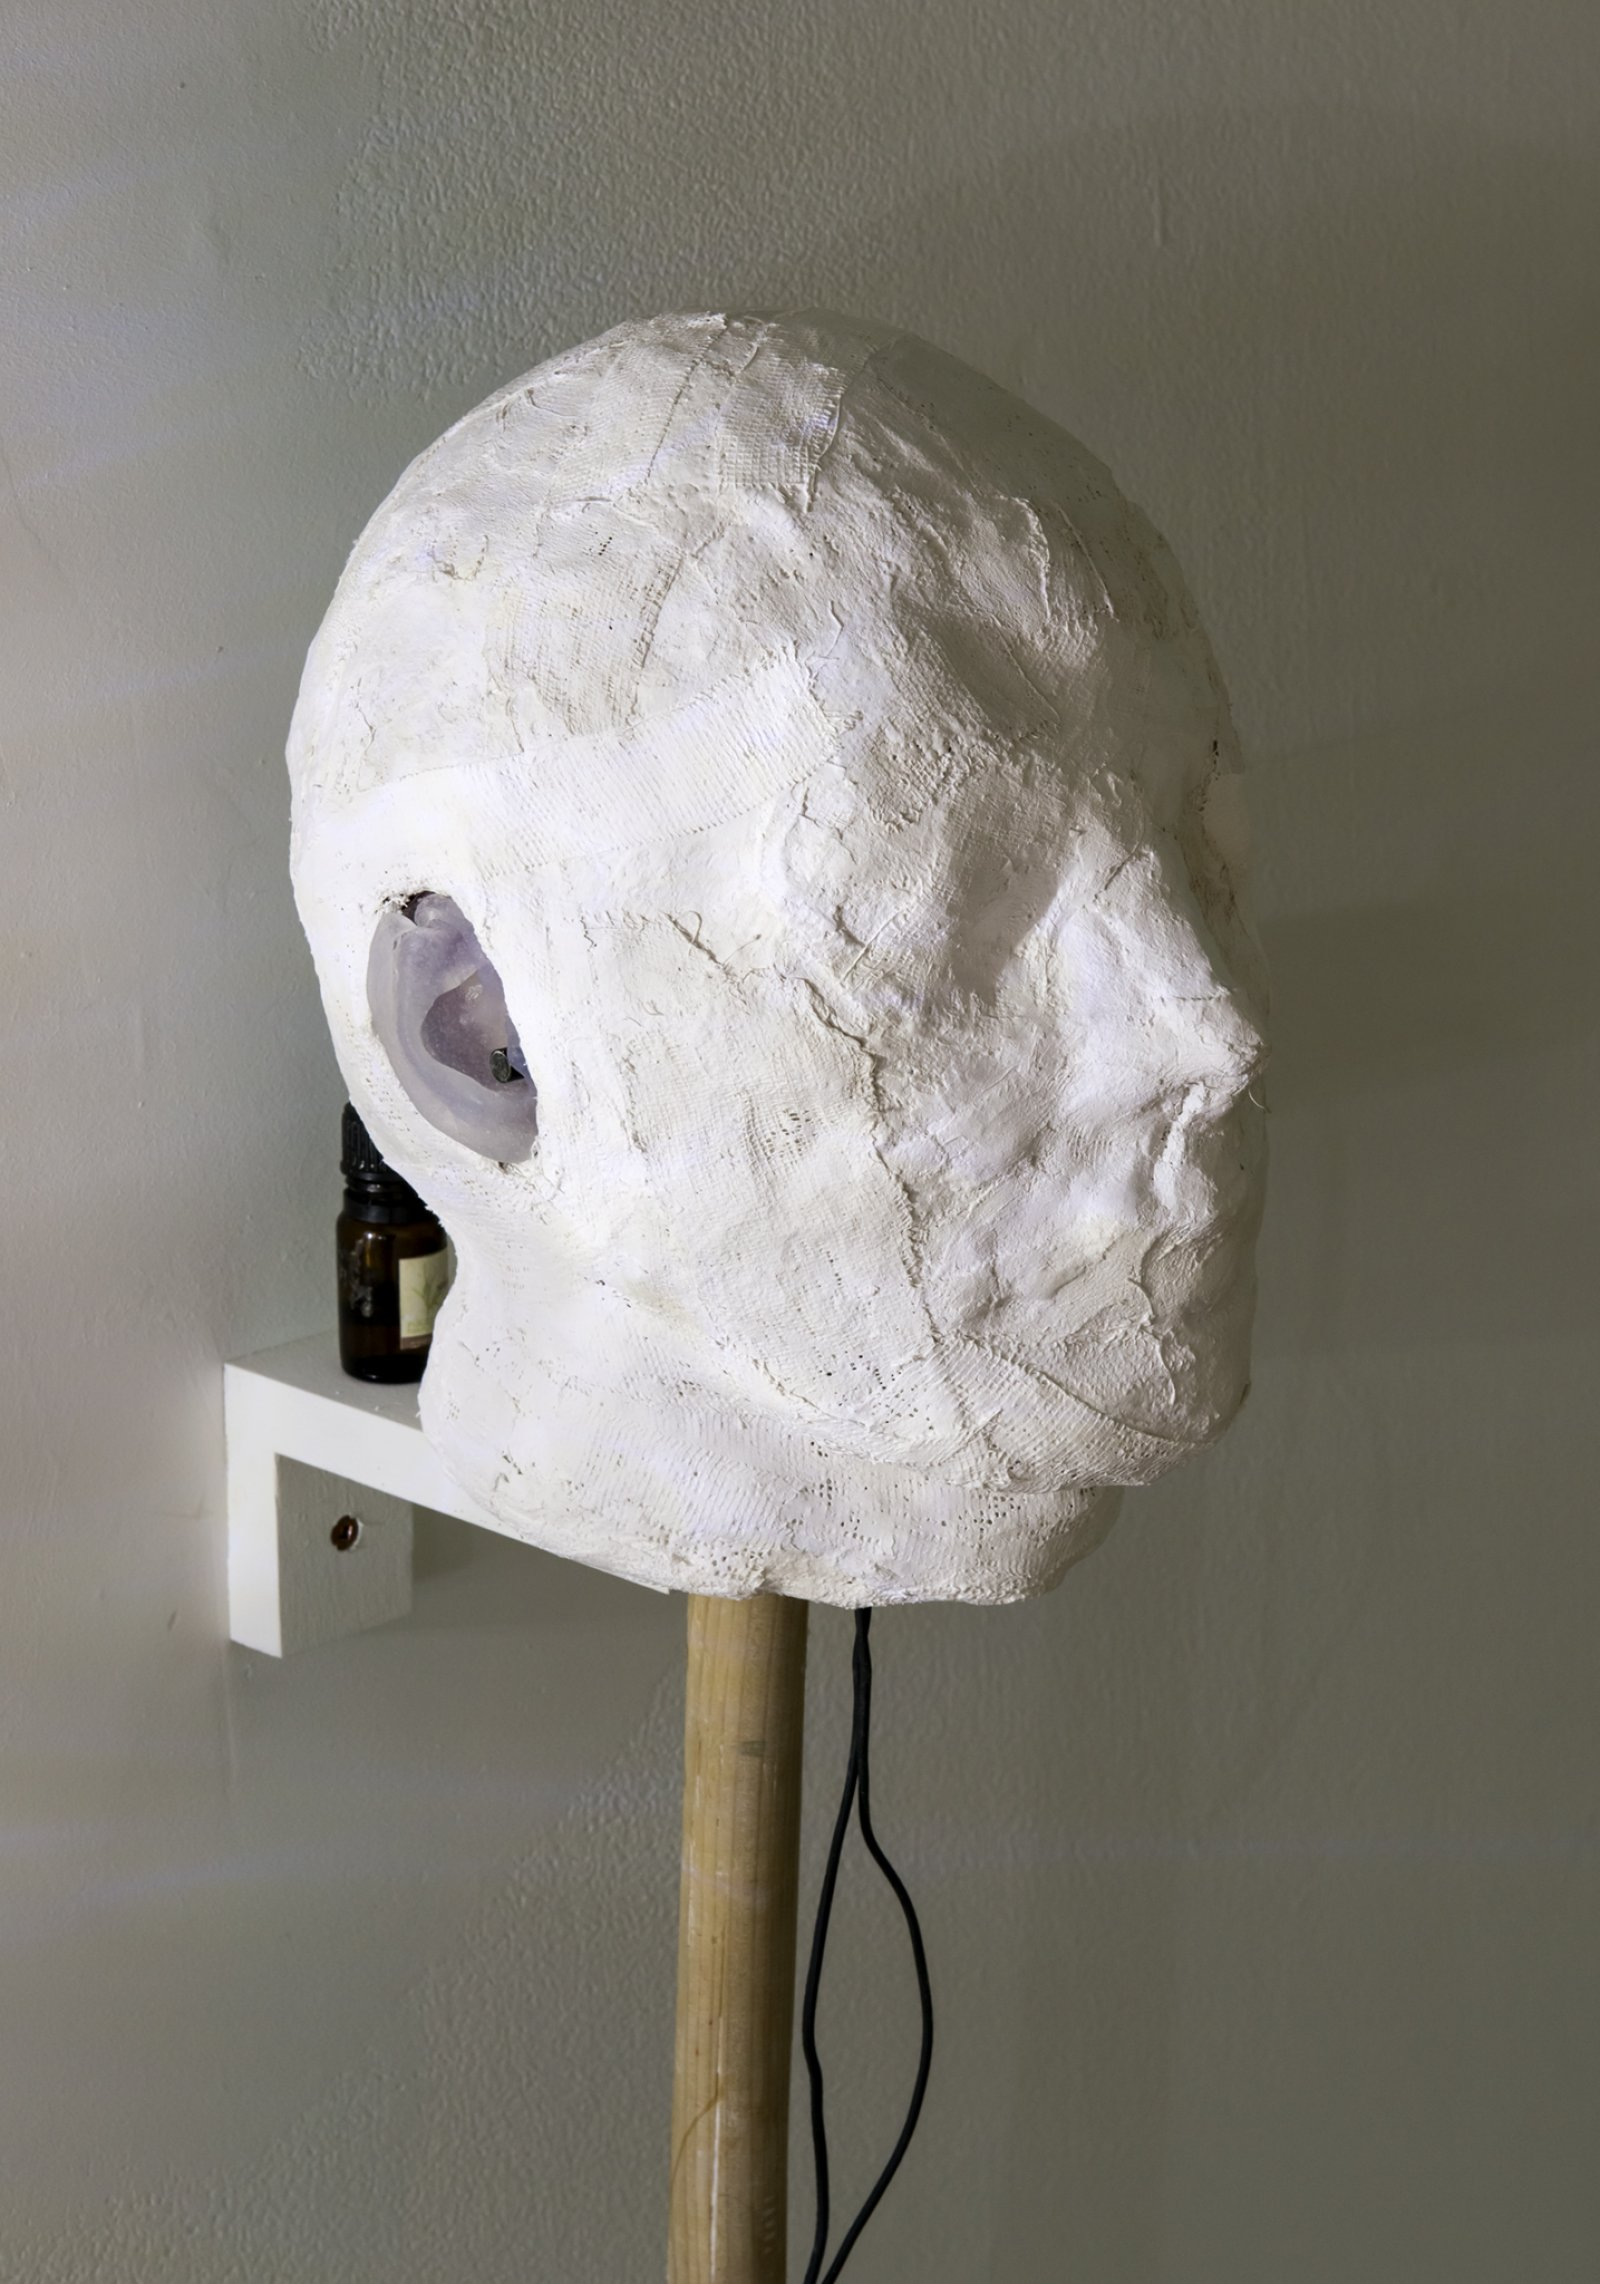 Julia Feyrer, Little Pitchers have Big Ears (detail), 2012, plaster bandage, mugwort, mugwort oil, binaural microphones, silicone ears, cotton, felt, wood, compass, 36 x 8 x 9 in. (91 x 20 x 23 cm)